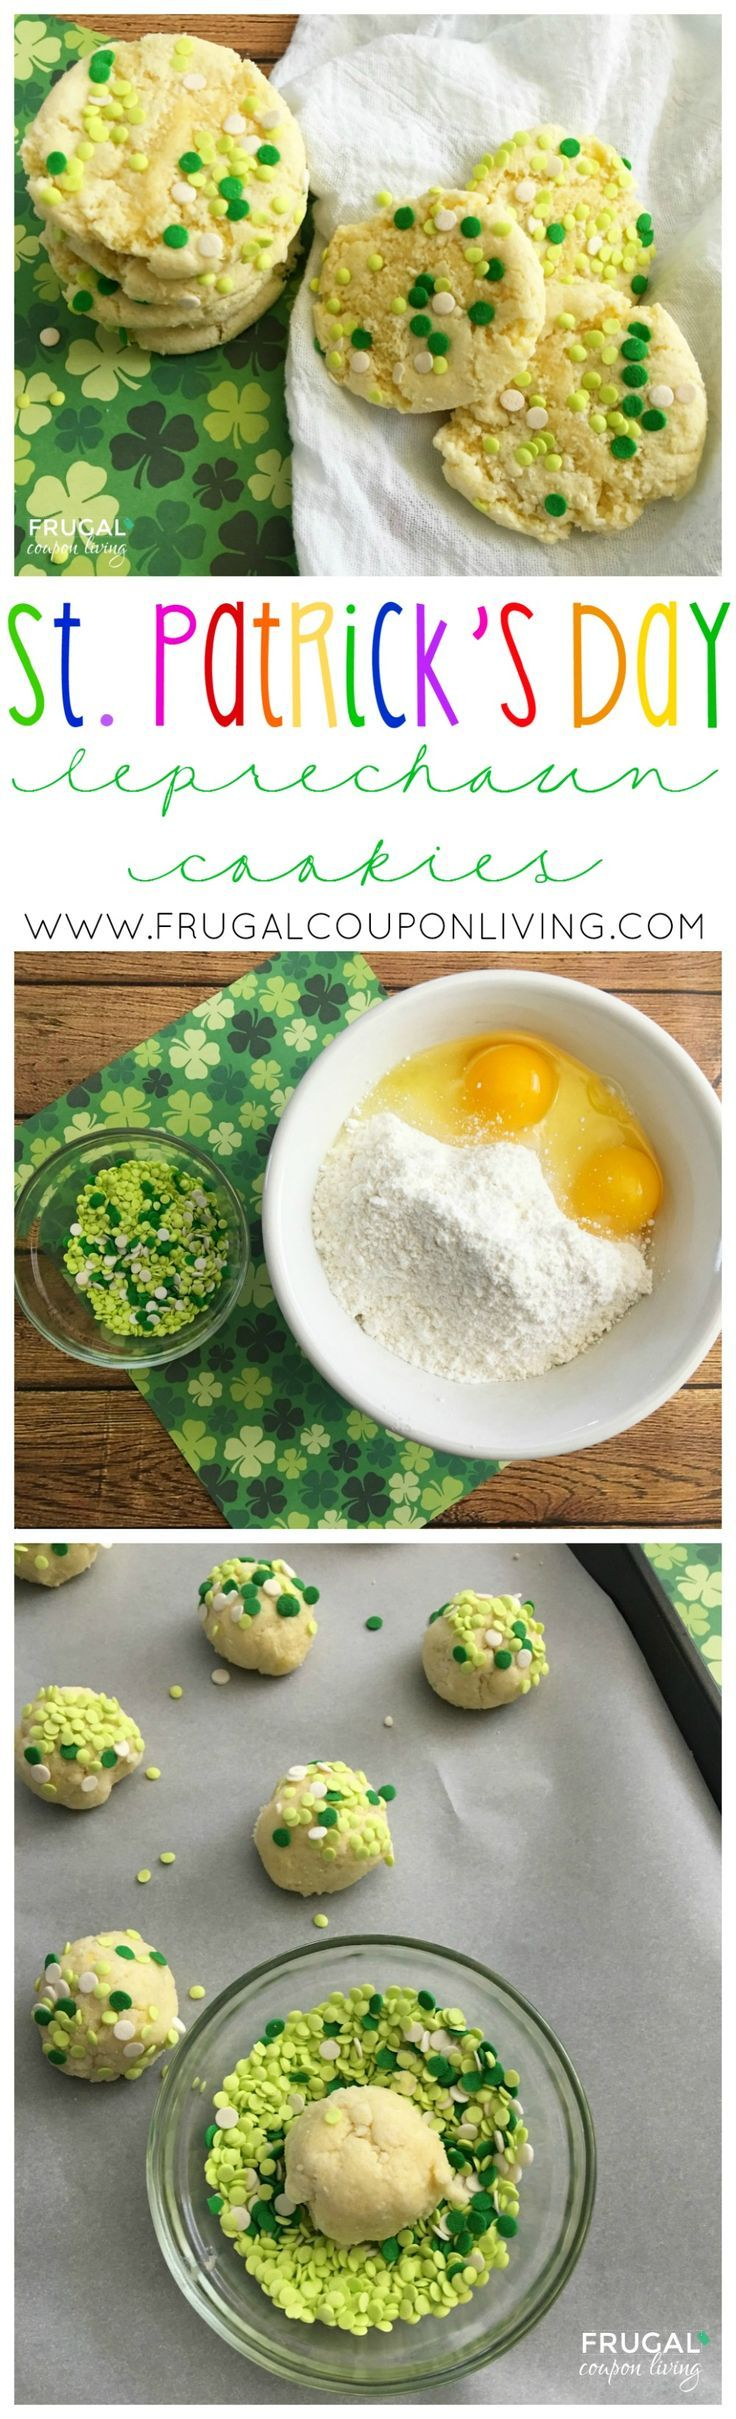 Frugal Coupon Living's Leprechaun Saint Patrick's Day Cookies. This and more St. Patty's Day Recipes.